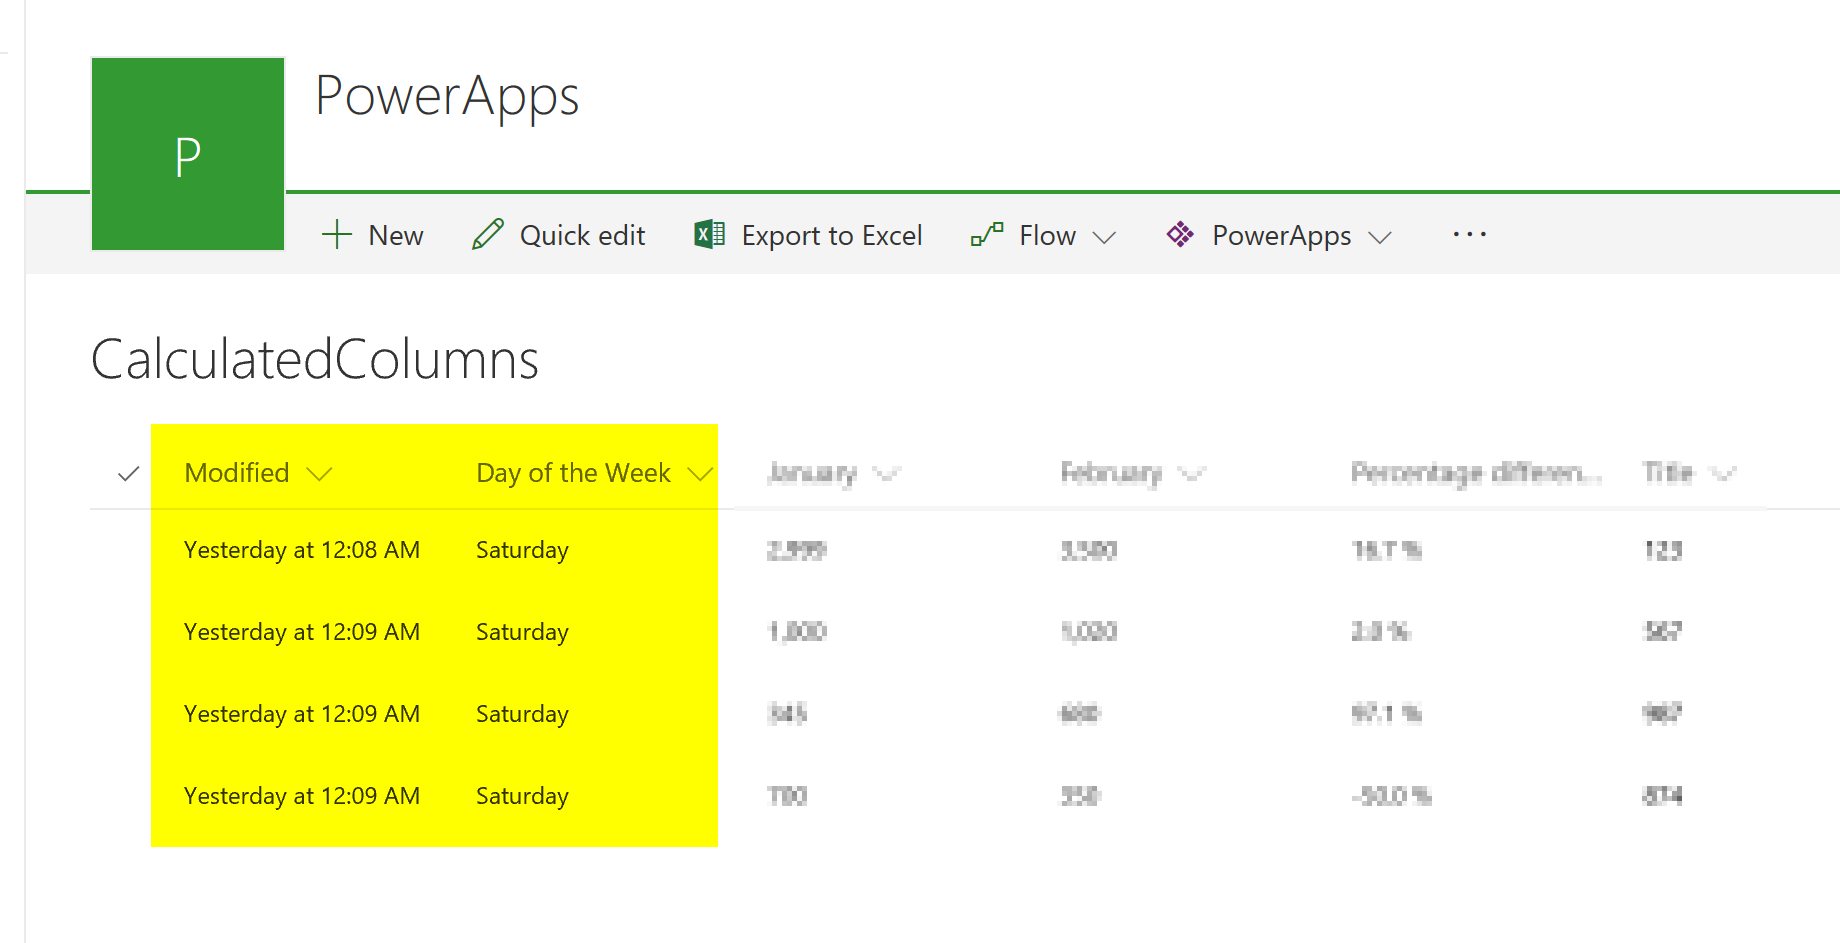 Powerapps Weekday